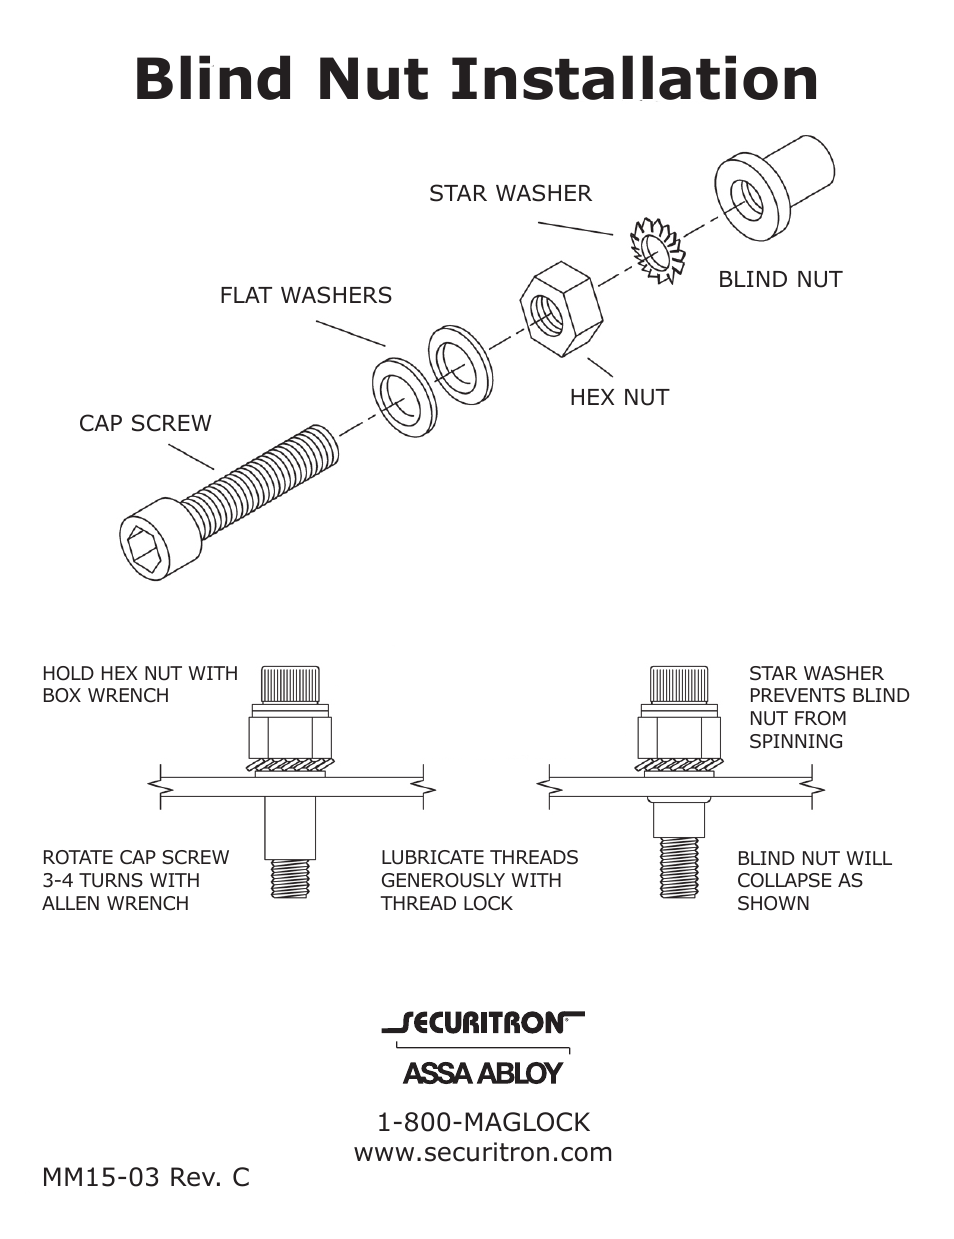 Securitron Blind Nut User Manual 1 Page Maglock Wiring Diagram